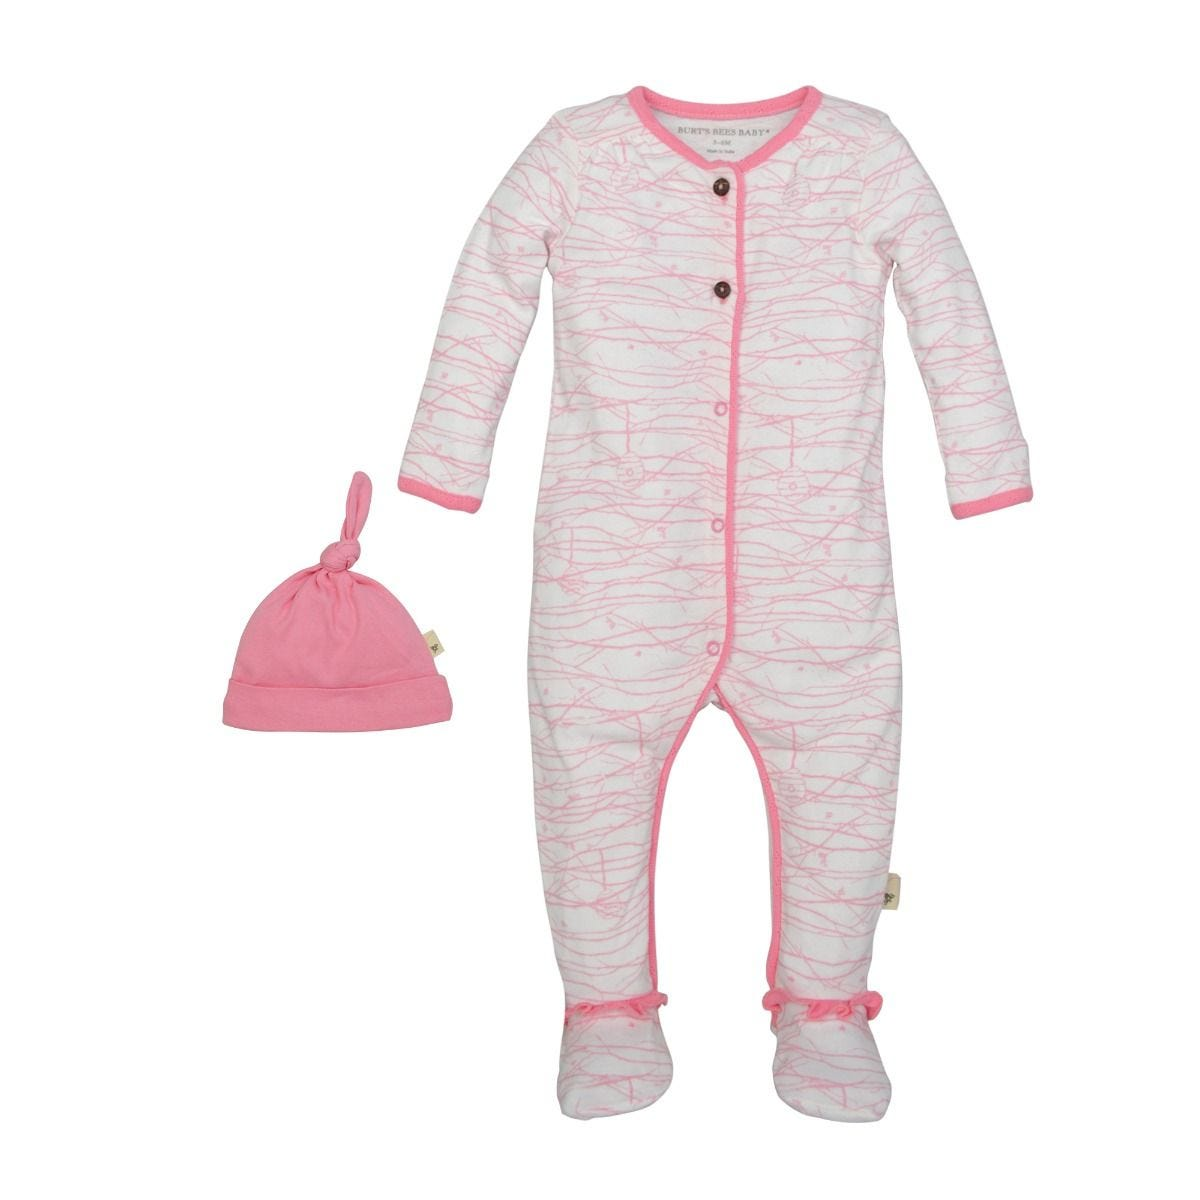 da97c3064 Autumn Trees Organic Pink Baby Girls Footed Romper   Hat Set ...